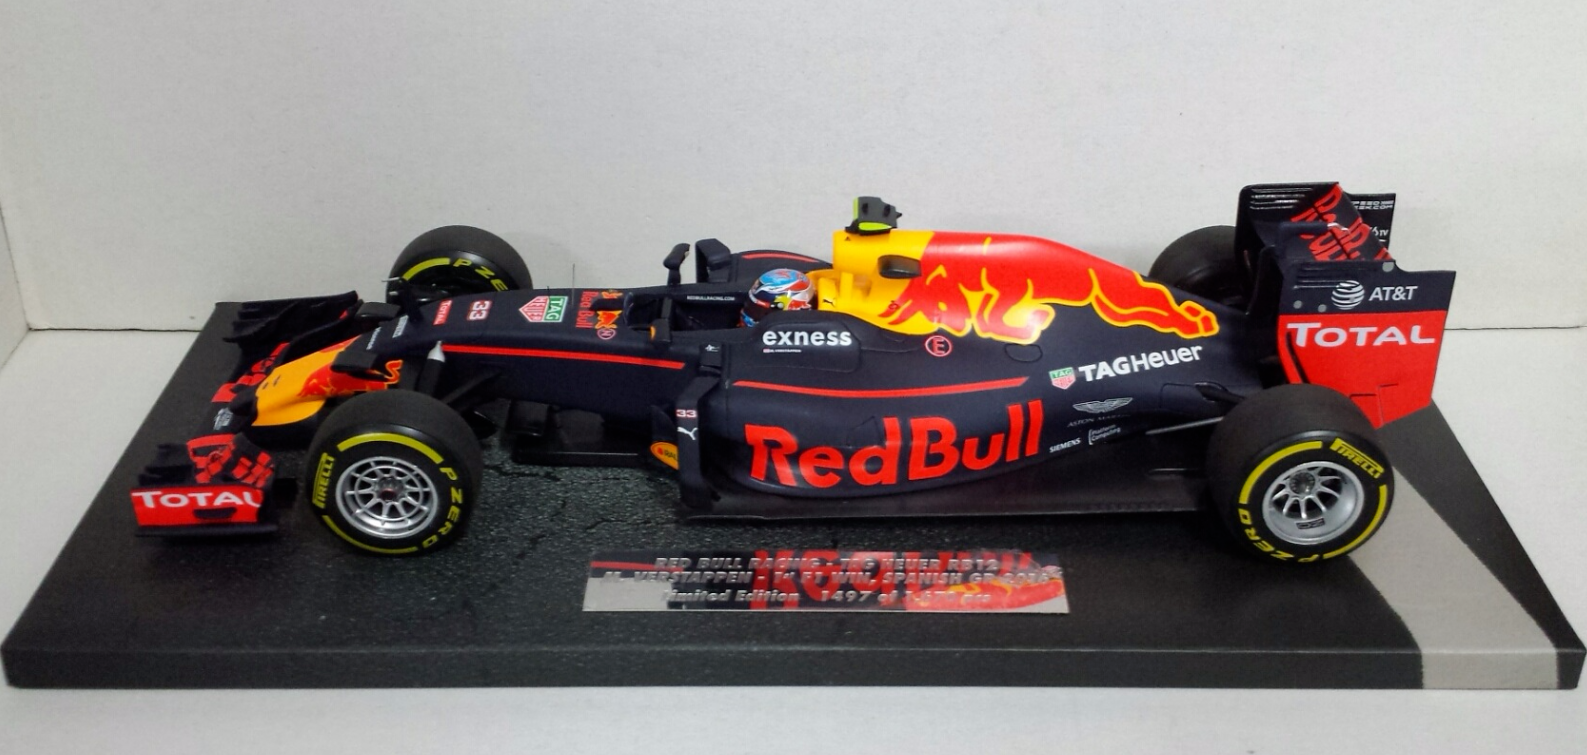 MINICHAMPS MAX VERSTAPPEN 1/18 RED BULL RACING F1 RB12 WINNER SPANISH GP 2016